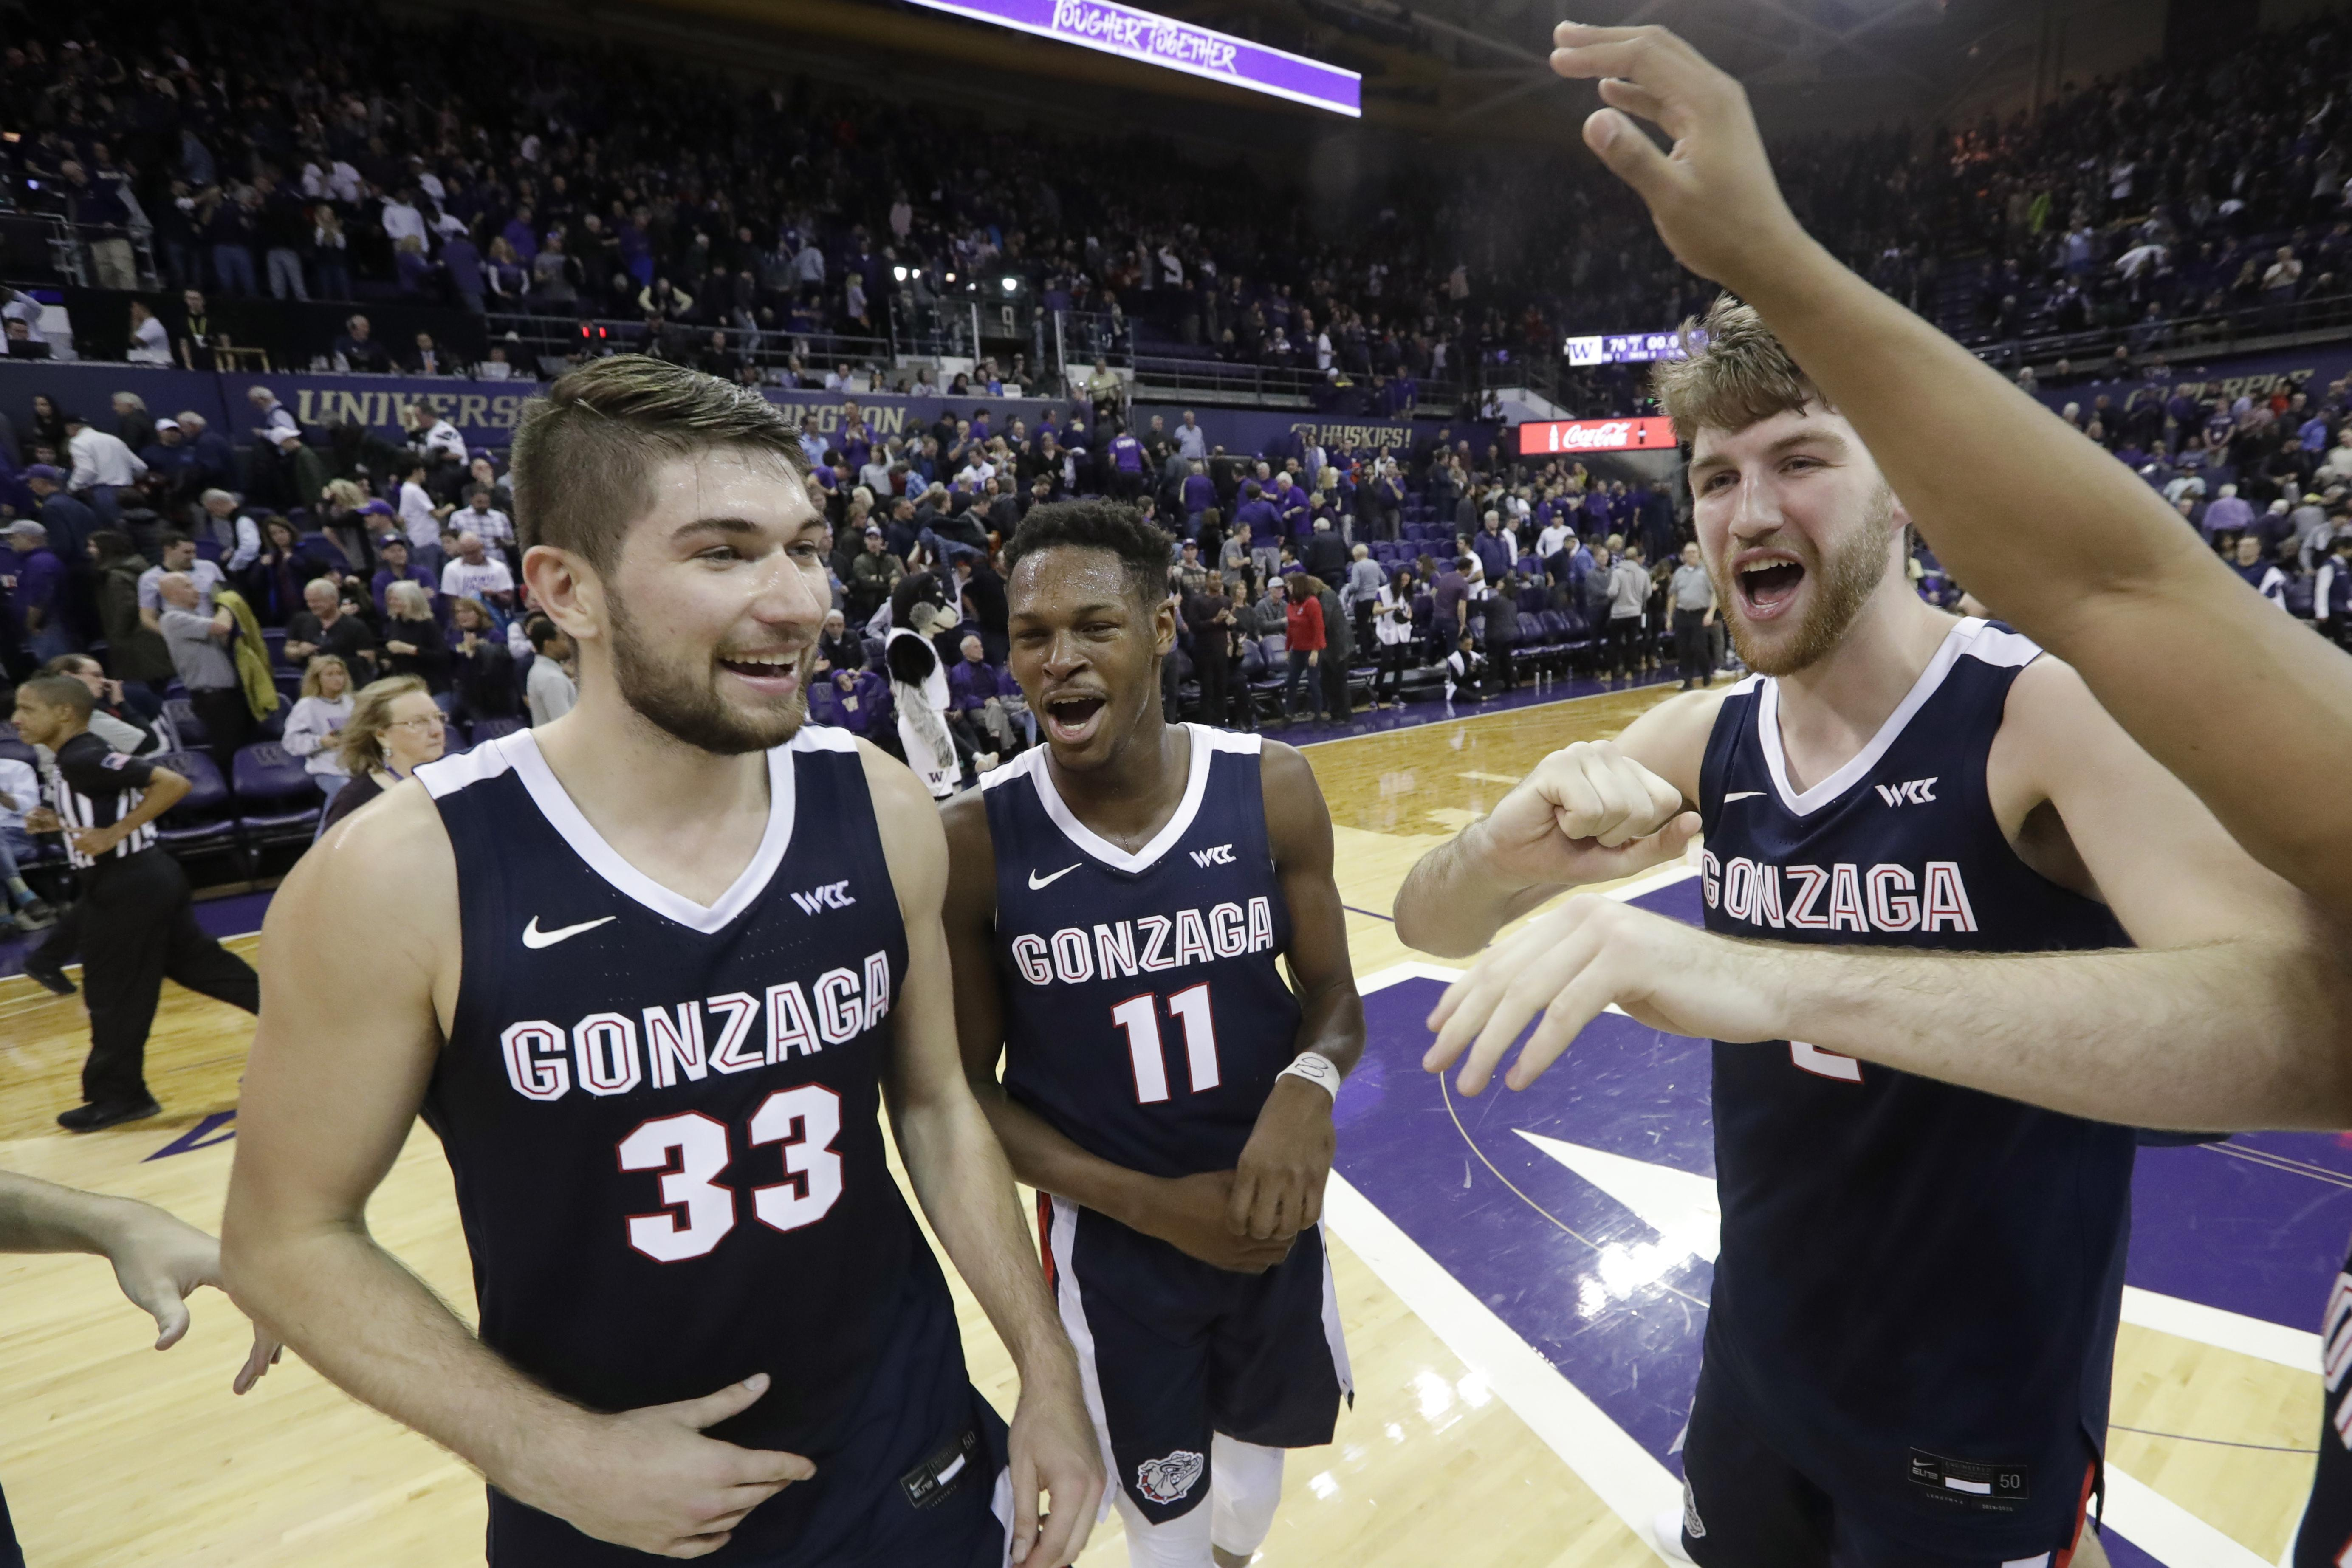 Killian Tillie played very well, and he and Joel Ayayi made big threes down the stretch to help Gonzaga get the overtime victory over Washington.  (Photo: Elaine Thompson/Associated Press via The Spokesman-Review.)